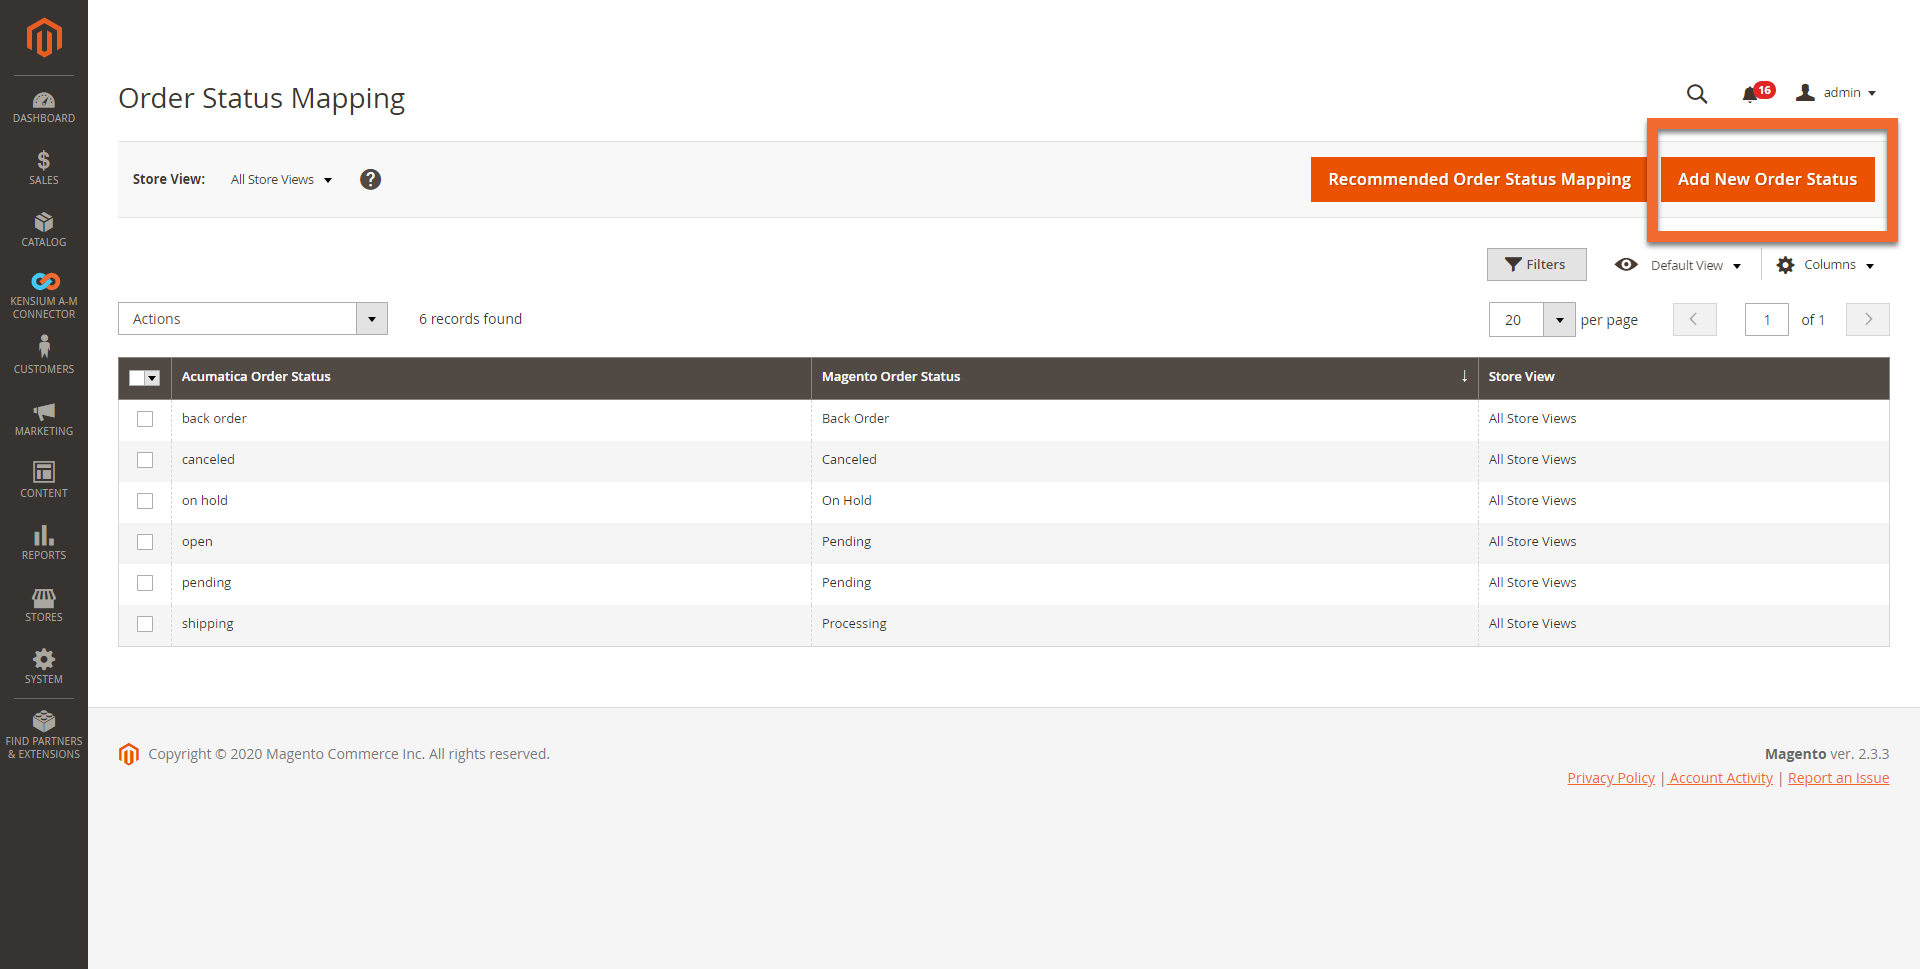 Order Status Mapping Screen in Magento